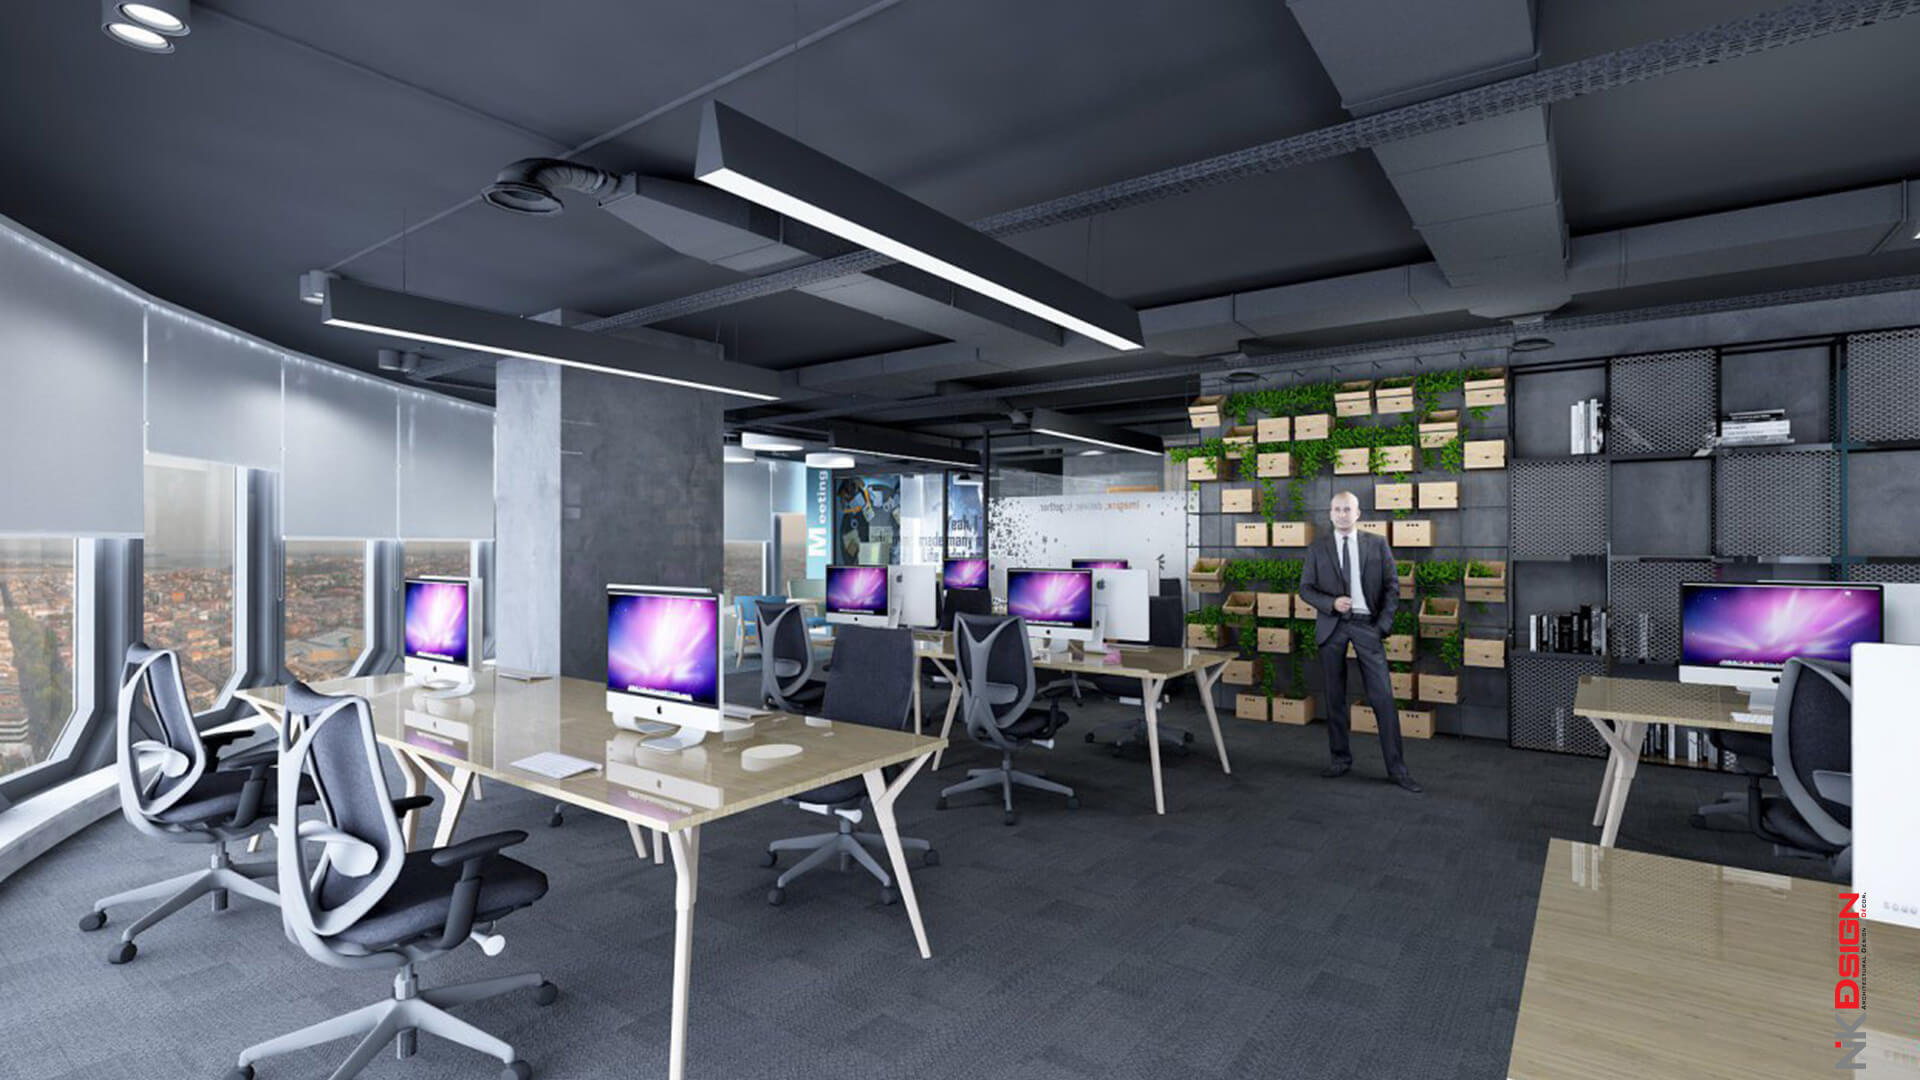 THE BEST CHOICE FOR OFFICE DESIGN